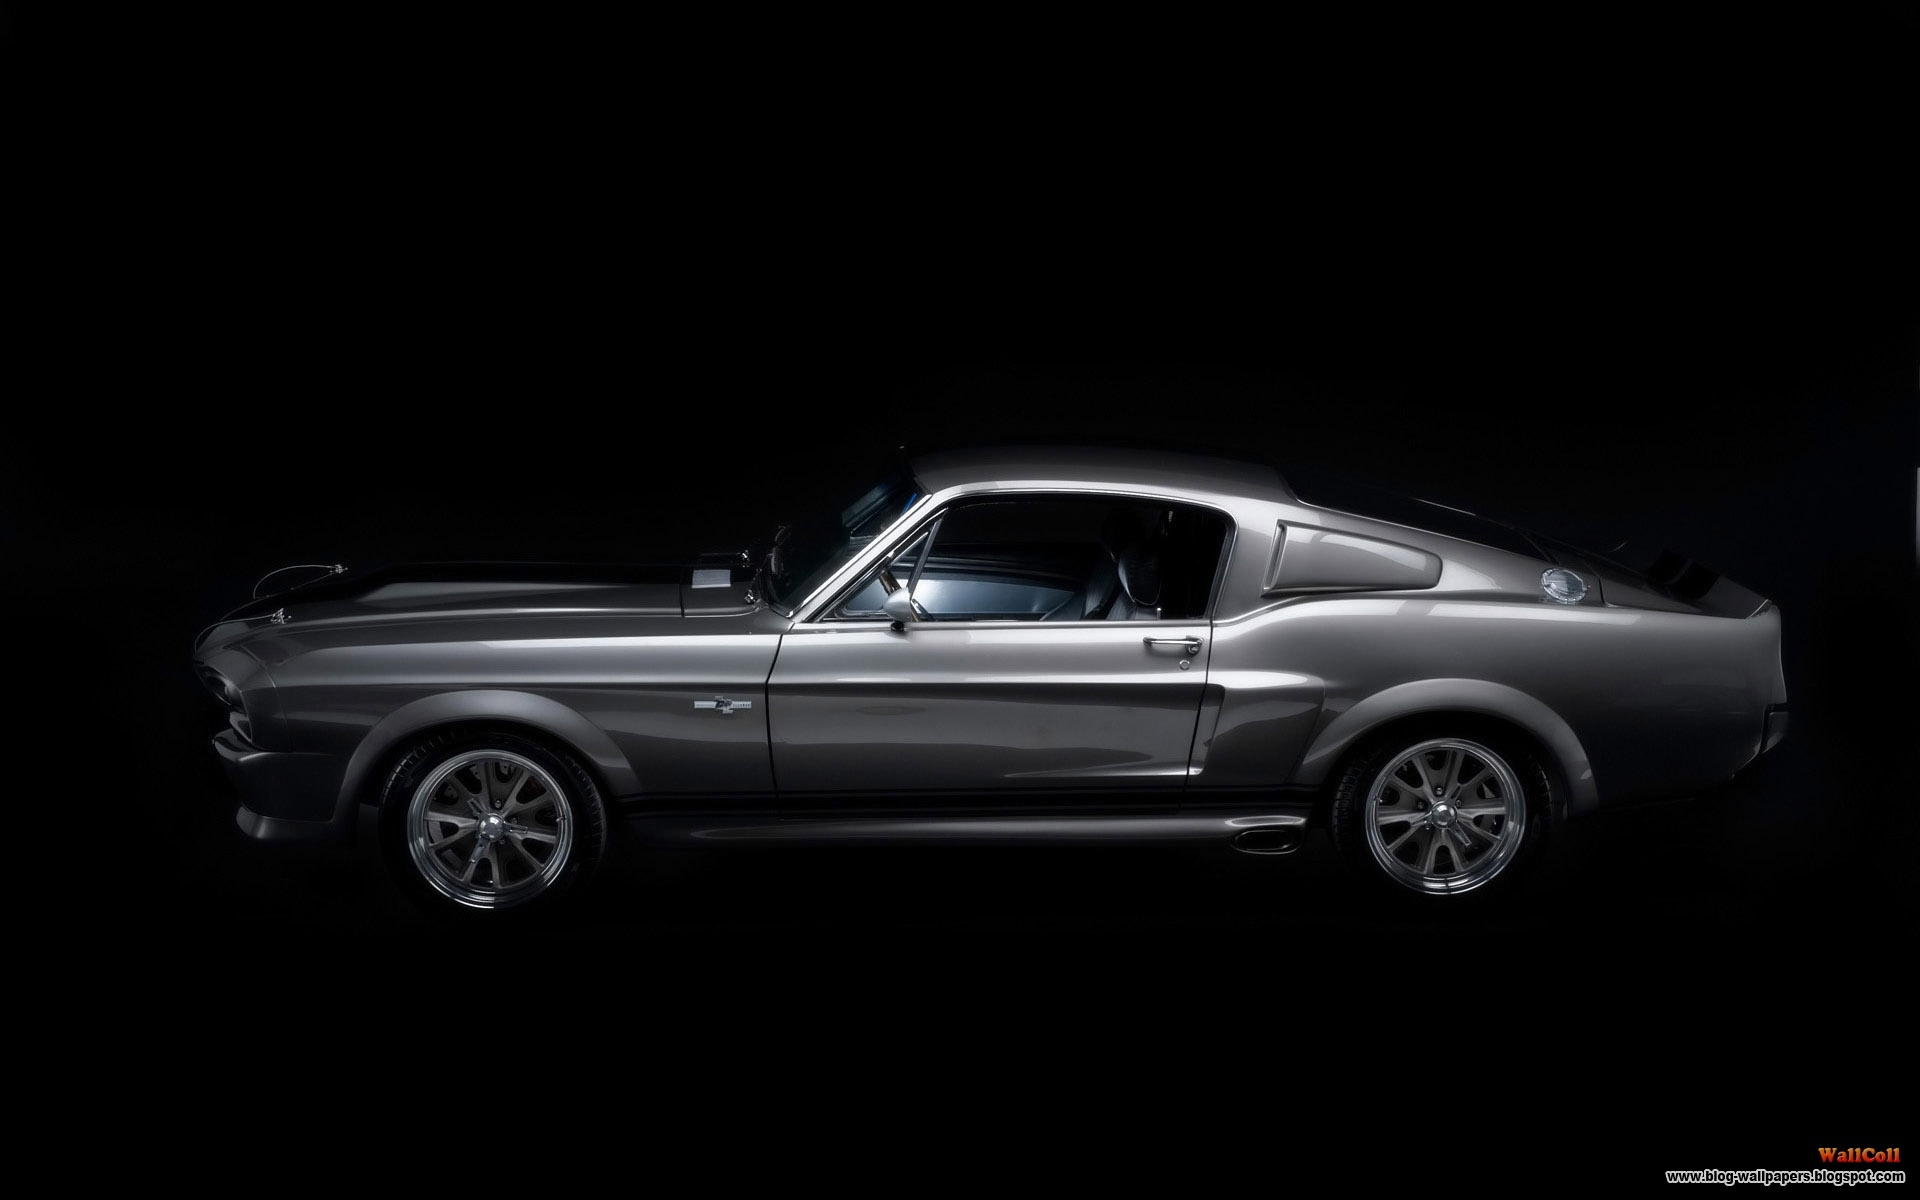 shelby mustang gt500 eleanor gone in 60 seconds hd wallpaper background image 1920x1200 id. Black Bedroom Furniture Sets. Home Design Ideas